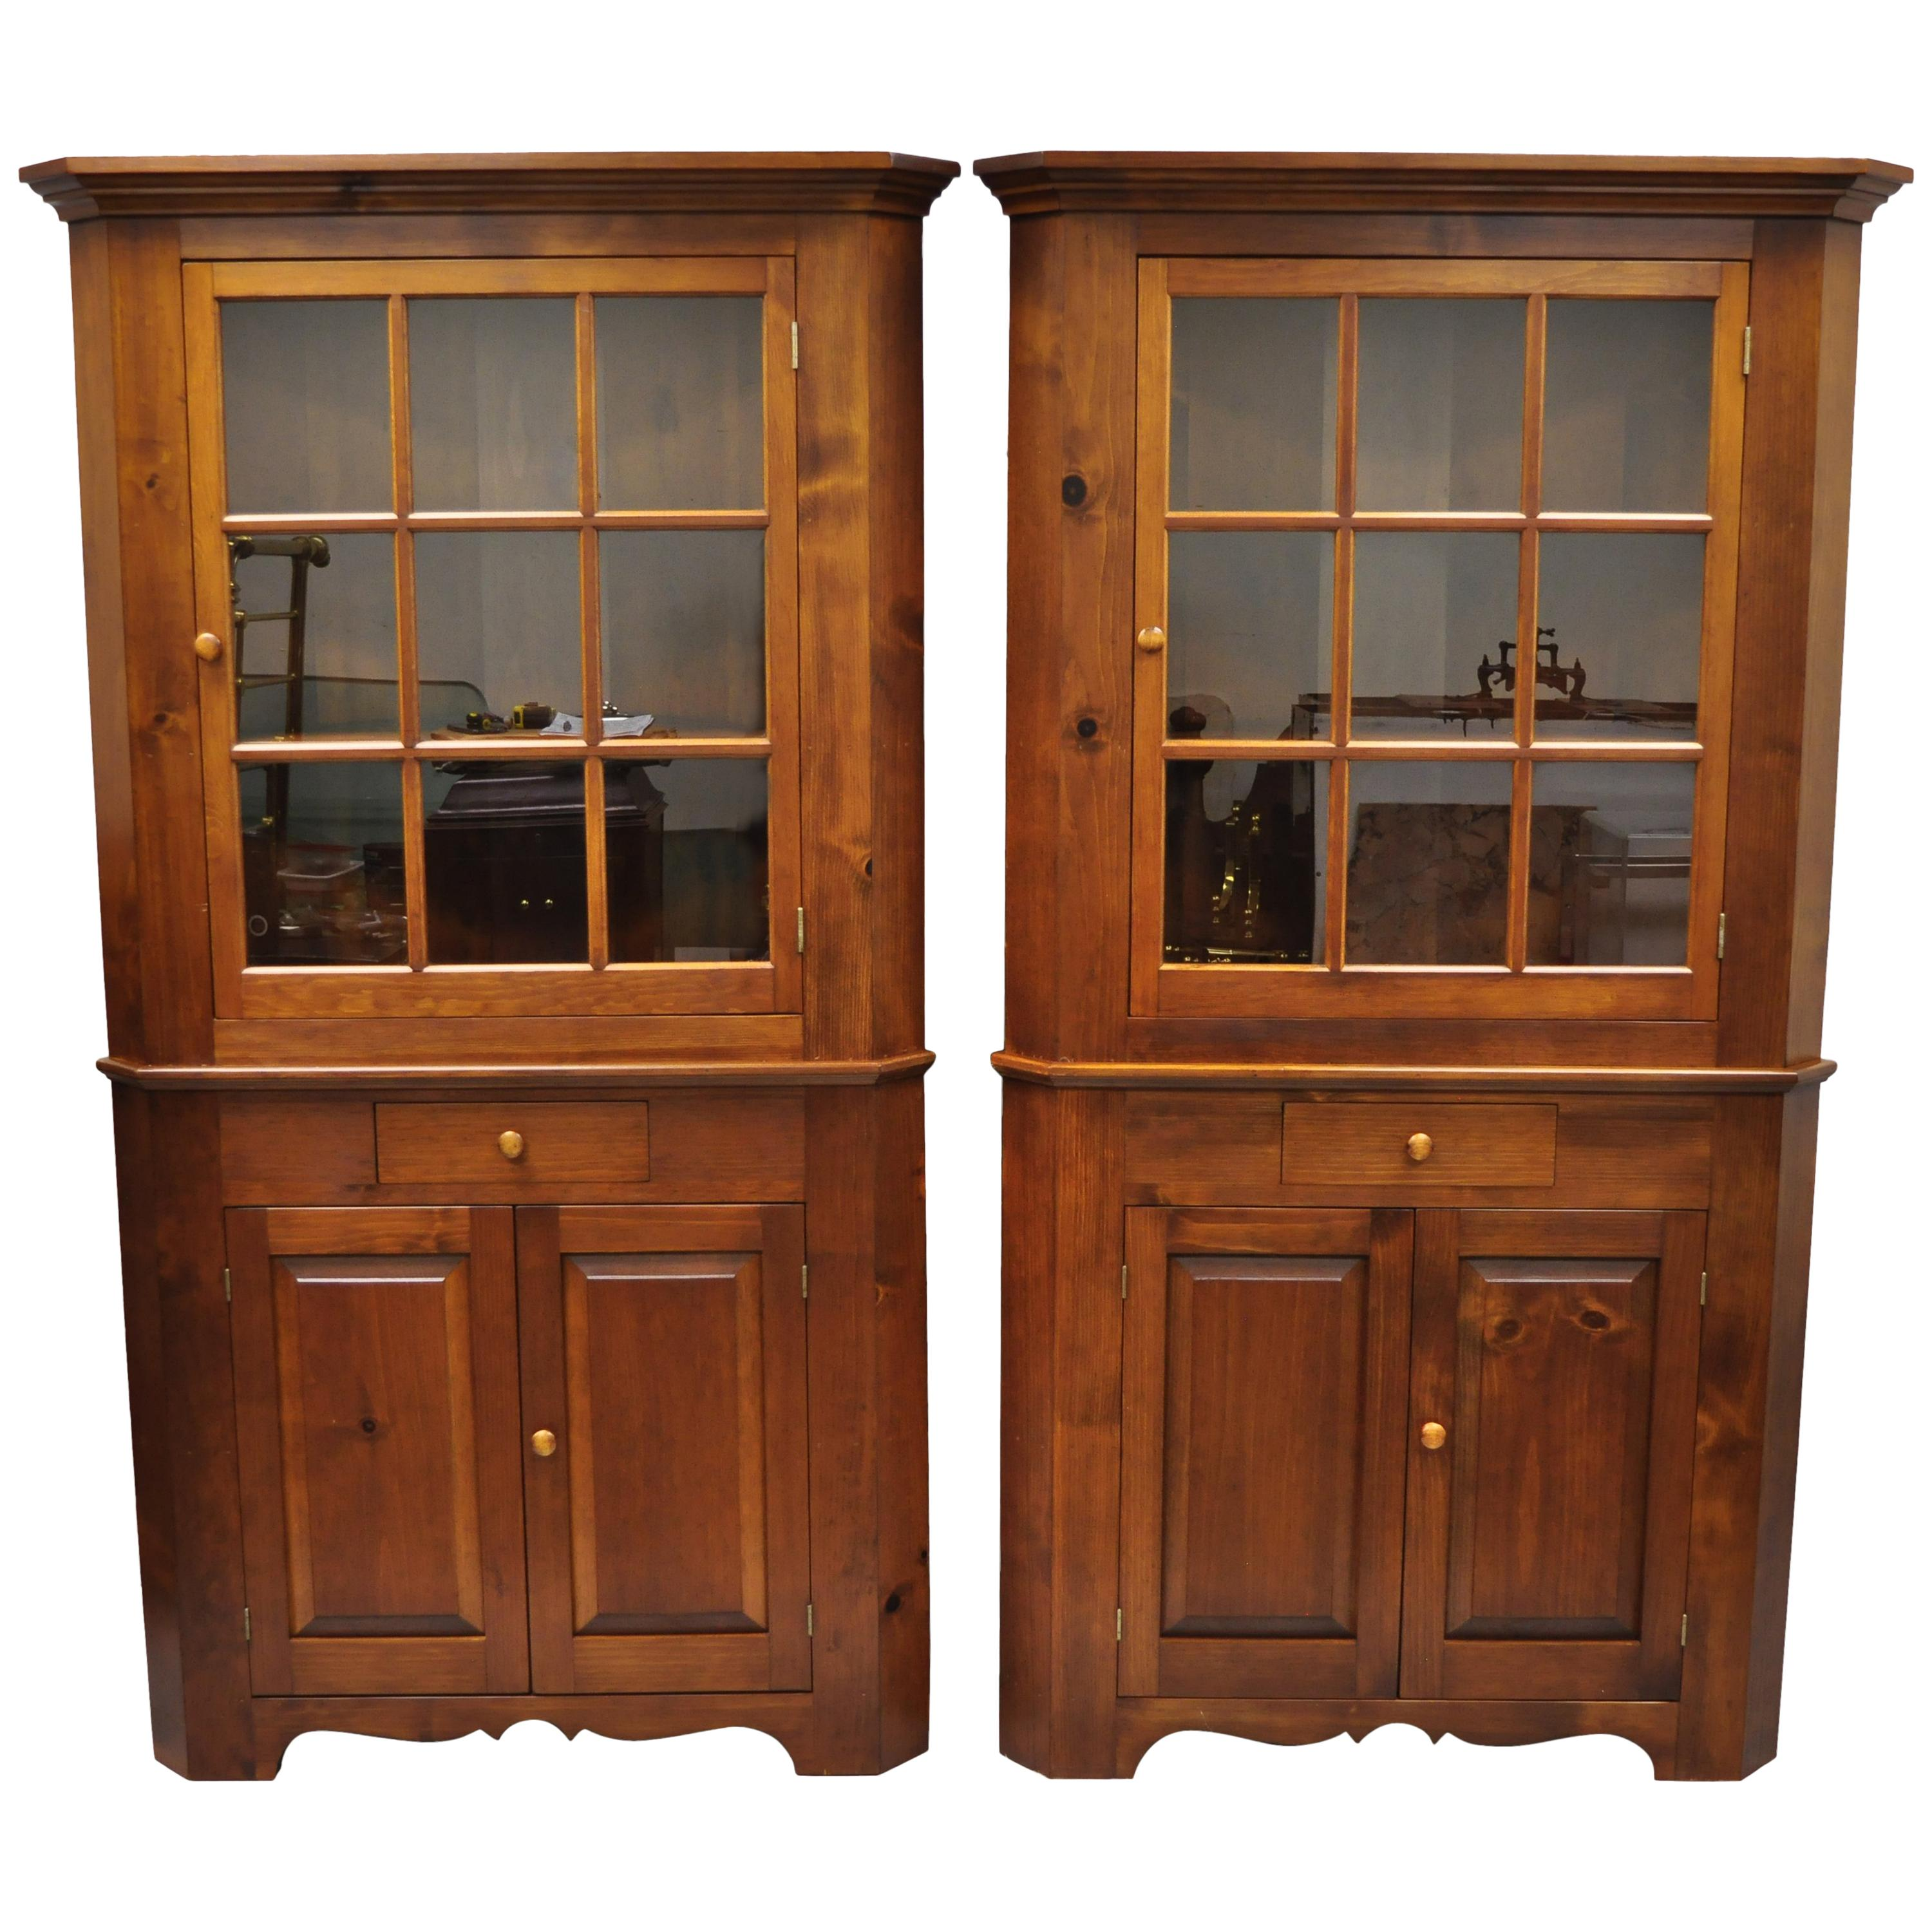 Bon Pair Of Pine Wood Colonial Style Corner Cupboard China Cabinets By Tom  Seely For Sale At 1stdibs